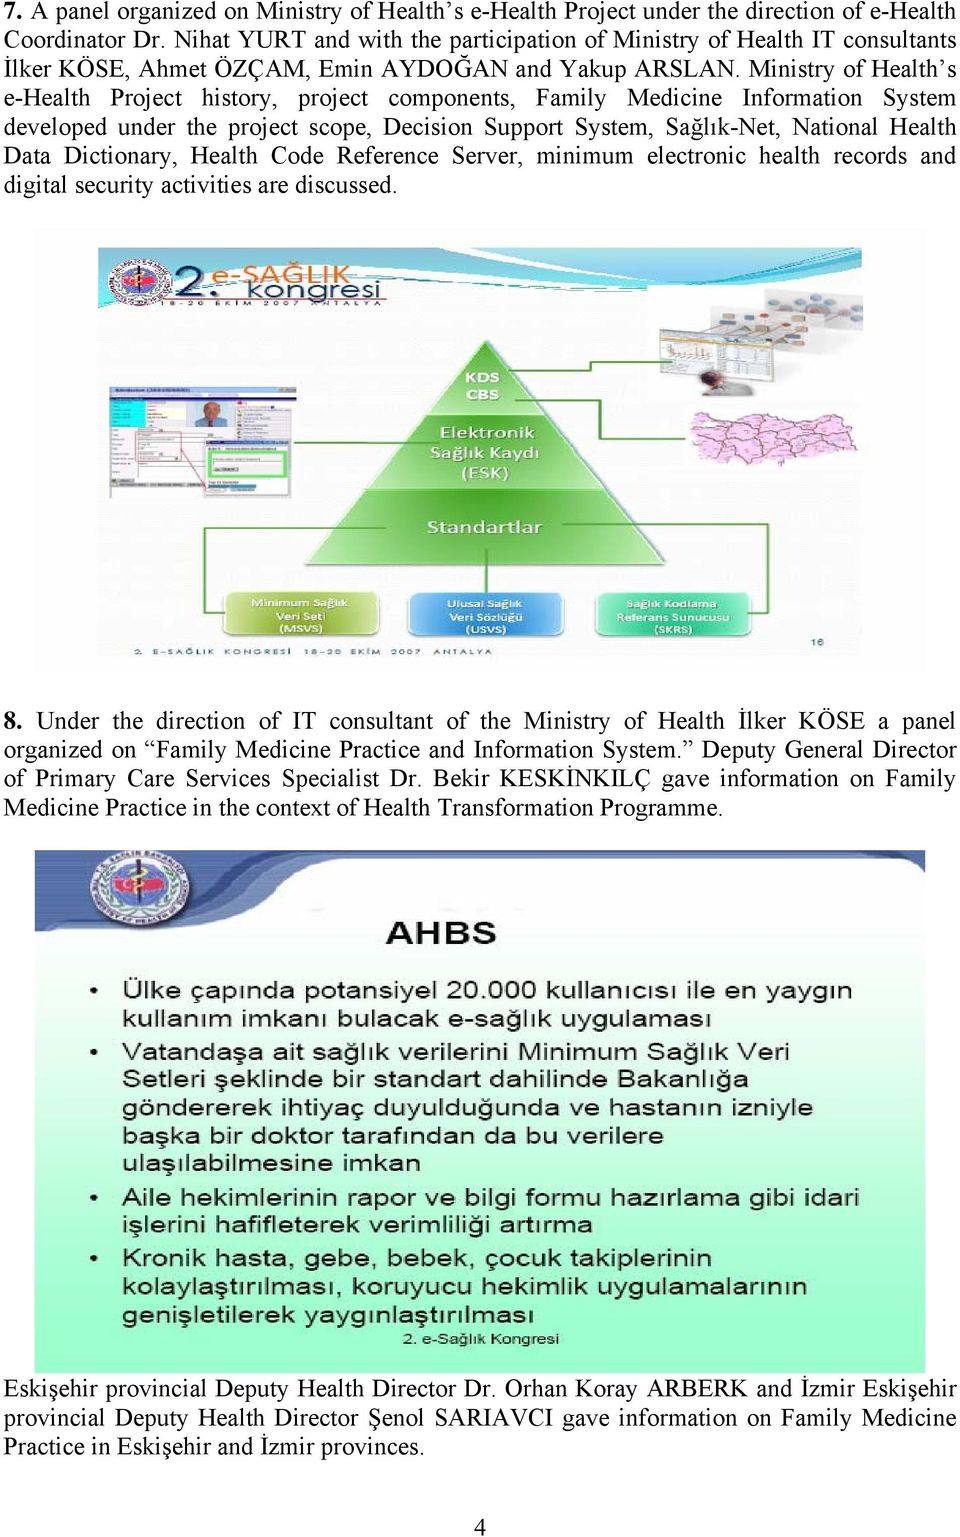 Ministry of Health s e-health Project history, project components, Family Medicine Information System developed under the project scope, Decision Support System, Sağlık-Net, National Health Data